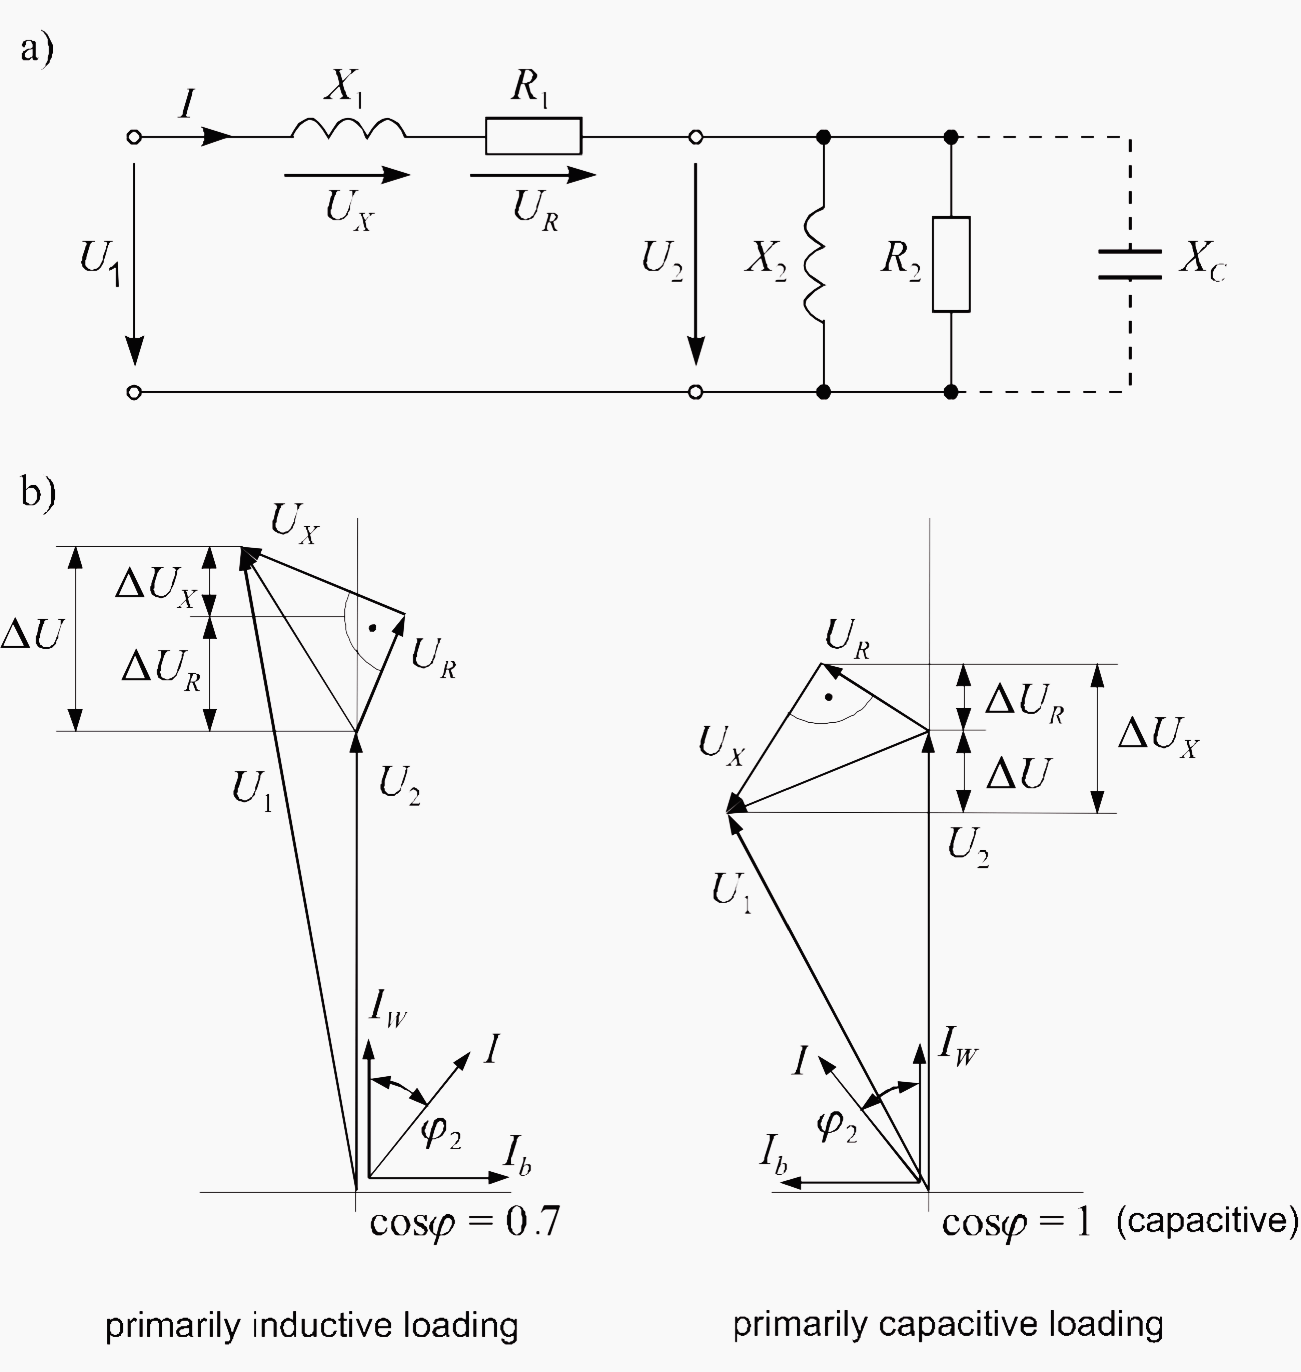 Equivalent circuit diagram of a network with different